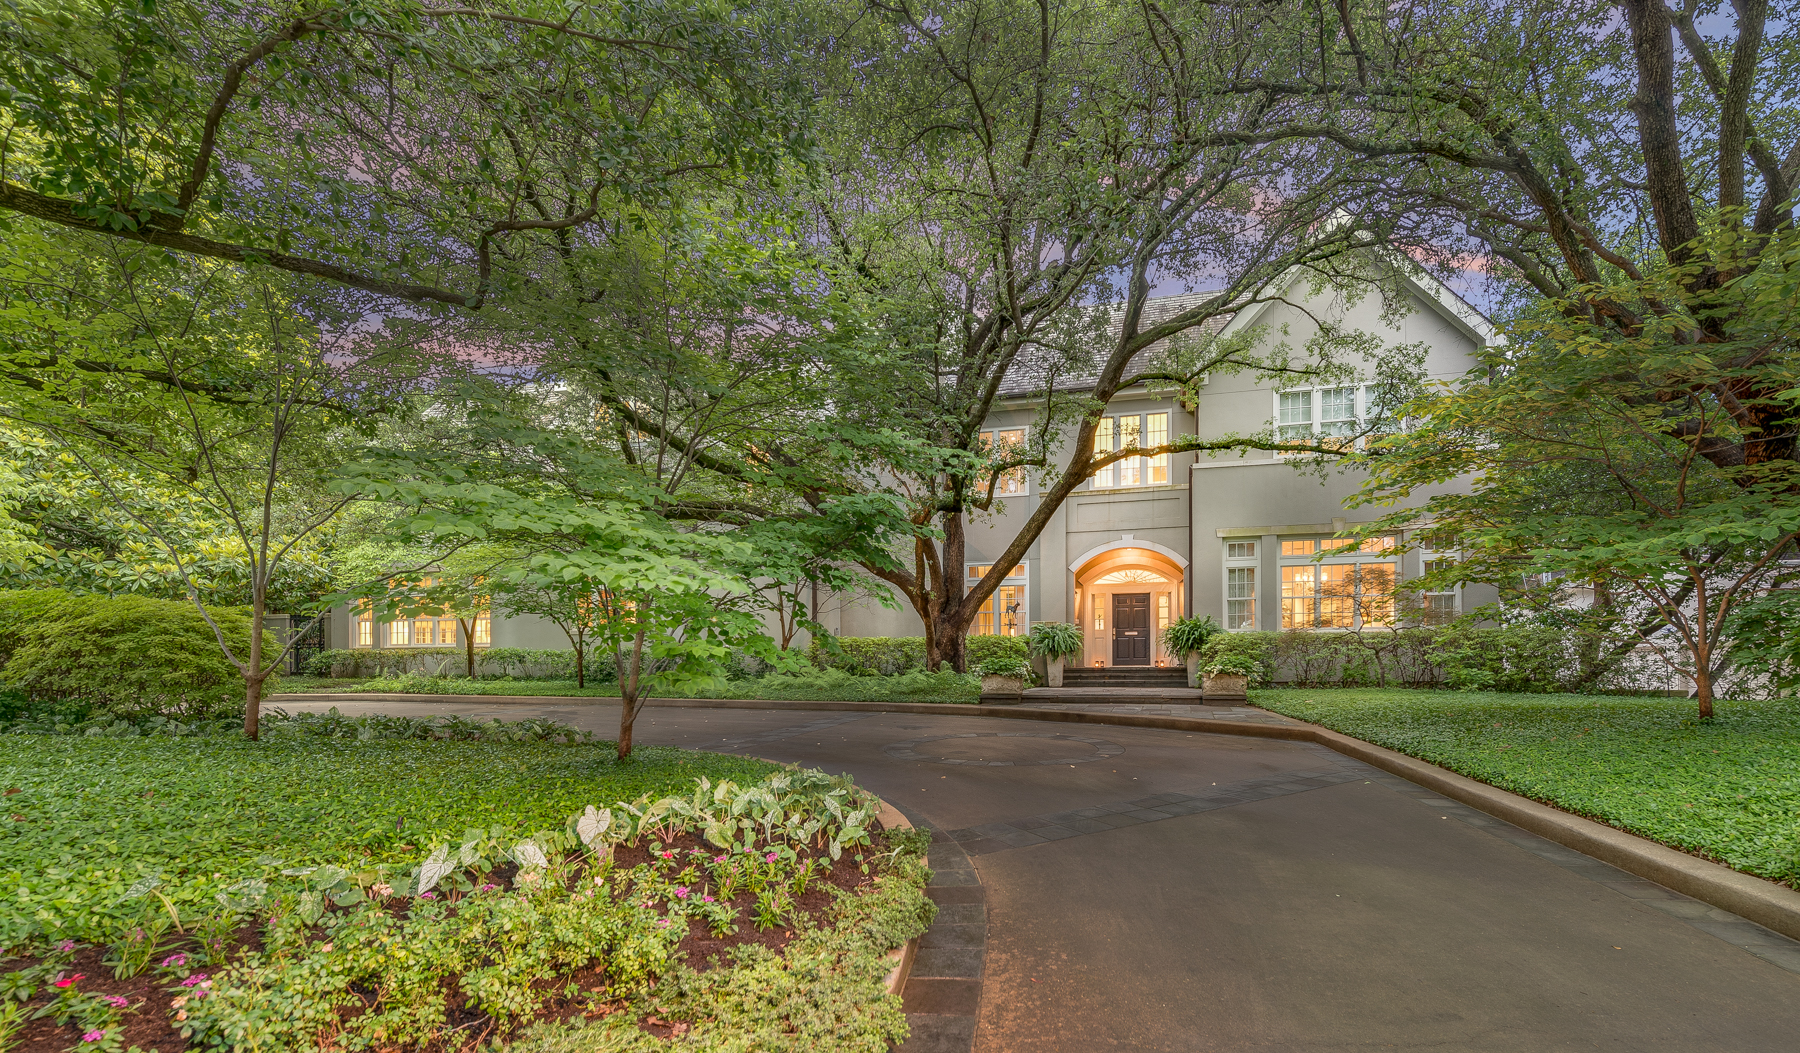 Single Family Home for Sale at Elegant and Classically Beautiful Home 4015 Beverly Drive Dallas, Texas 75205 United States